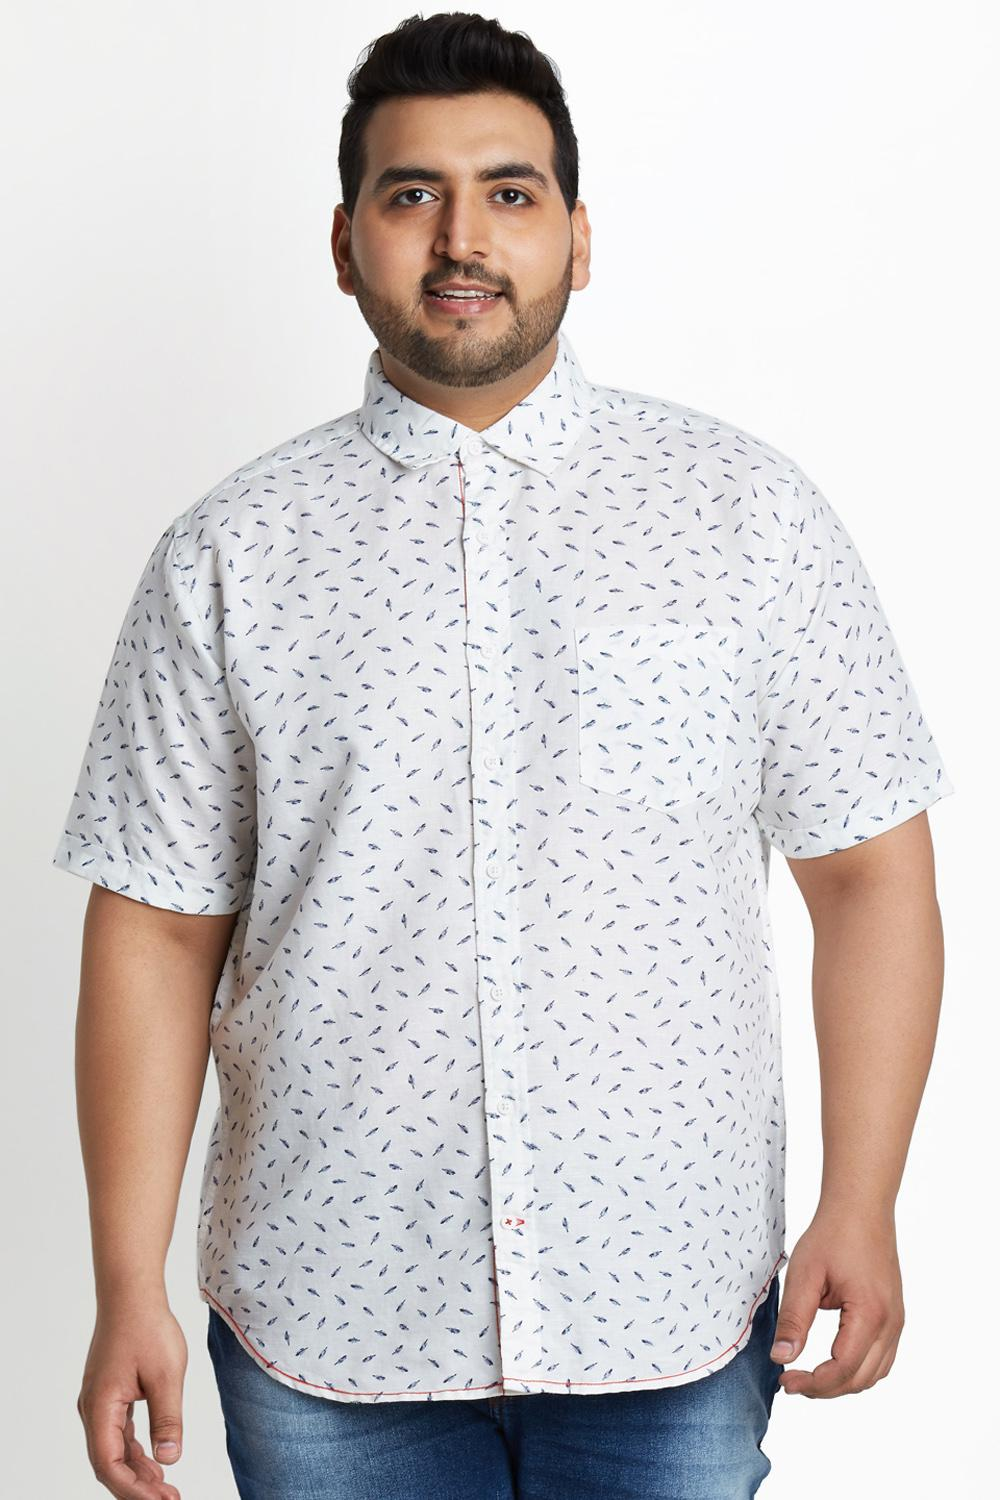 a90900d7254 Plus Size Men Clothing Store Online in India